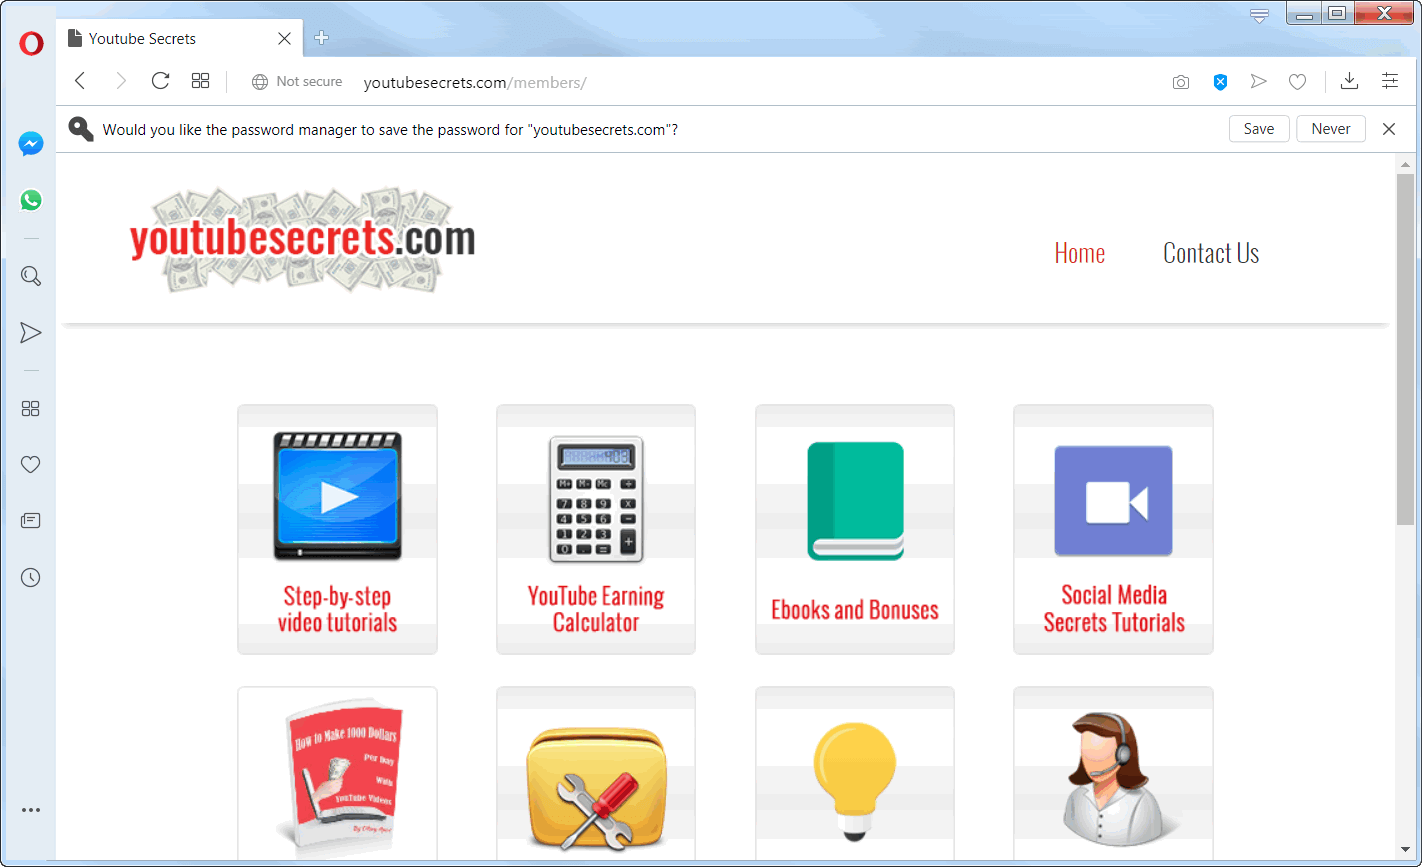 screen print of YouTubeSecrets.com's membership web page